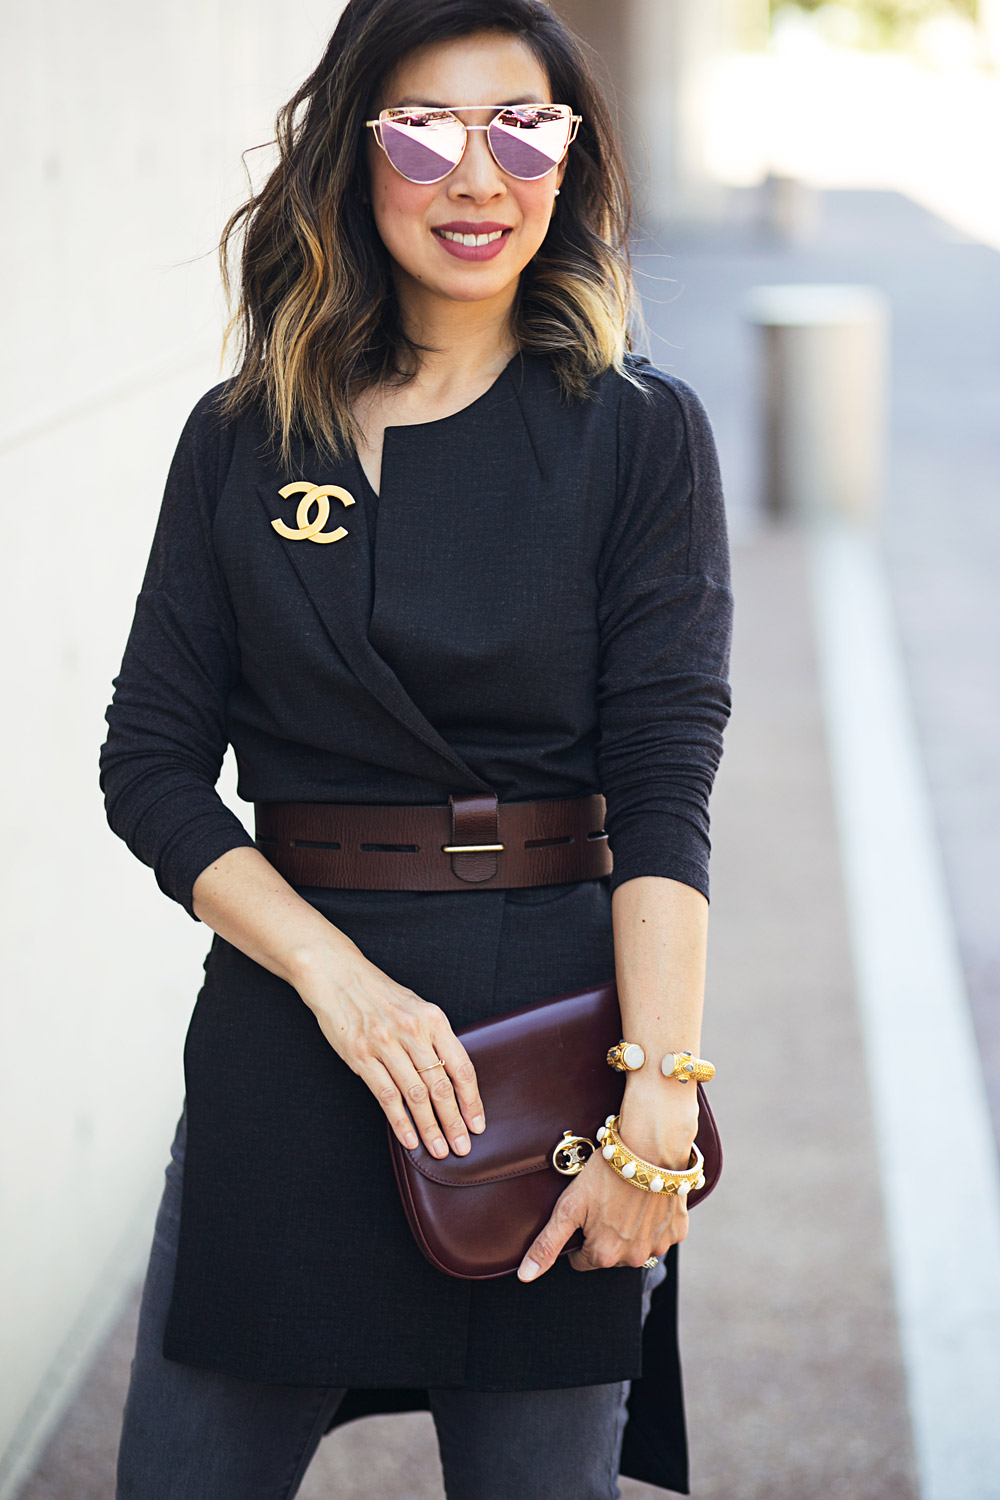 cabi drafting vest with chanel brooch and slim boyfriend jeans for a girls night out outfit